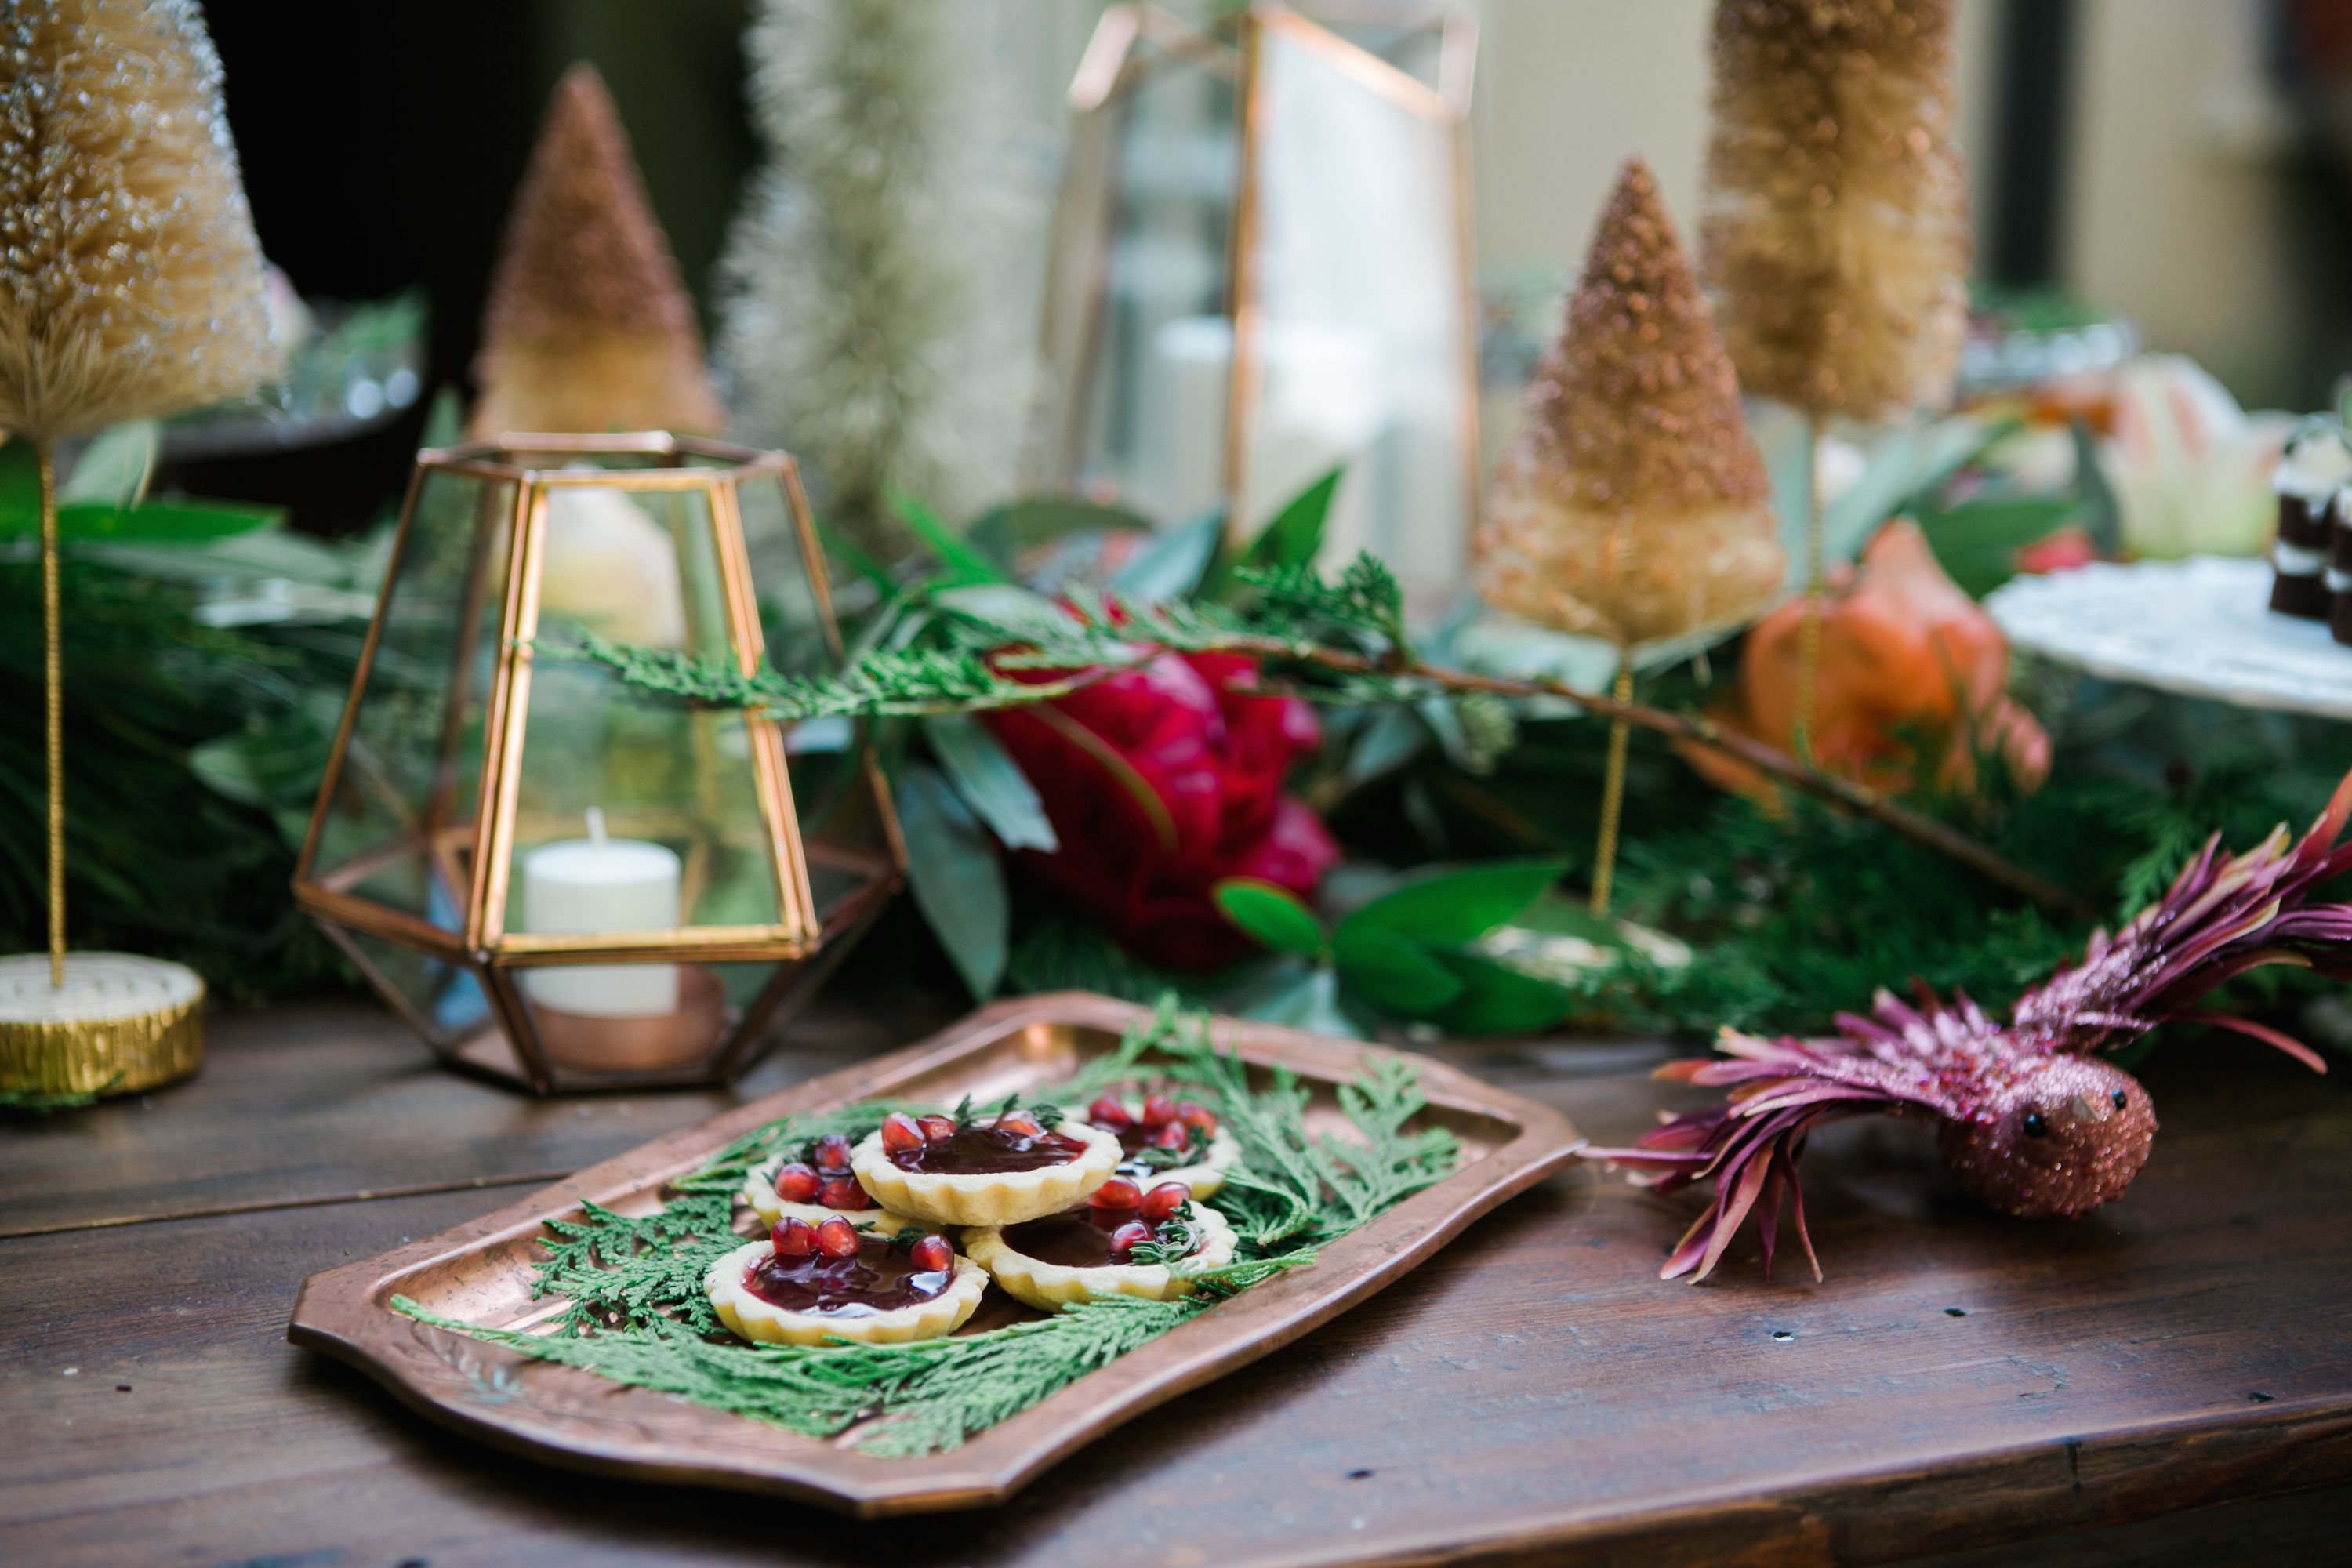 15 Best Christmas Table Decorations - Ideas for Holiday Dinner Tablescape